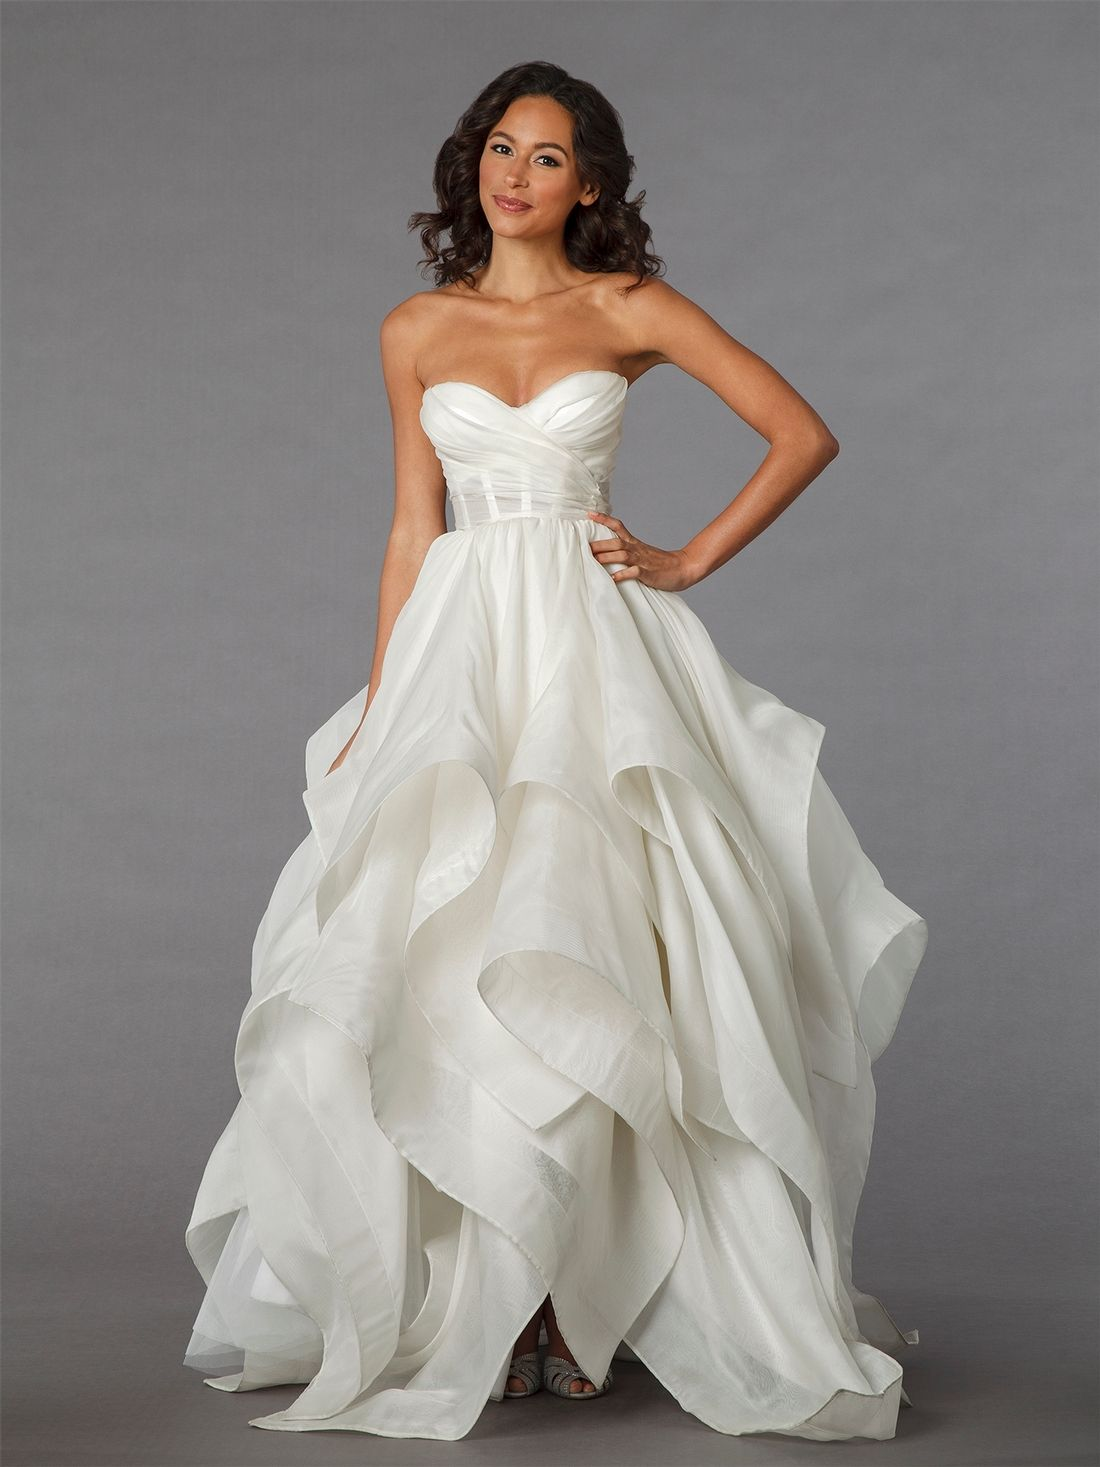 Kleinfeld bridal wedding dresses httpweddingspow kleinfeld bridal wedding dresses httpweddingspow junglespirit Images